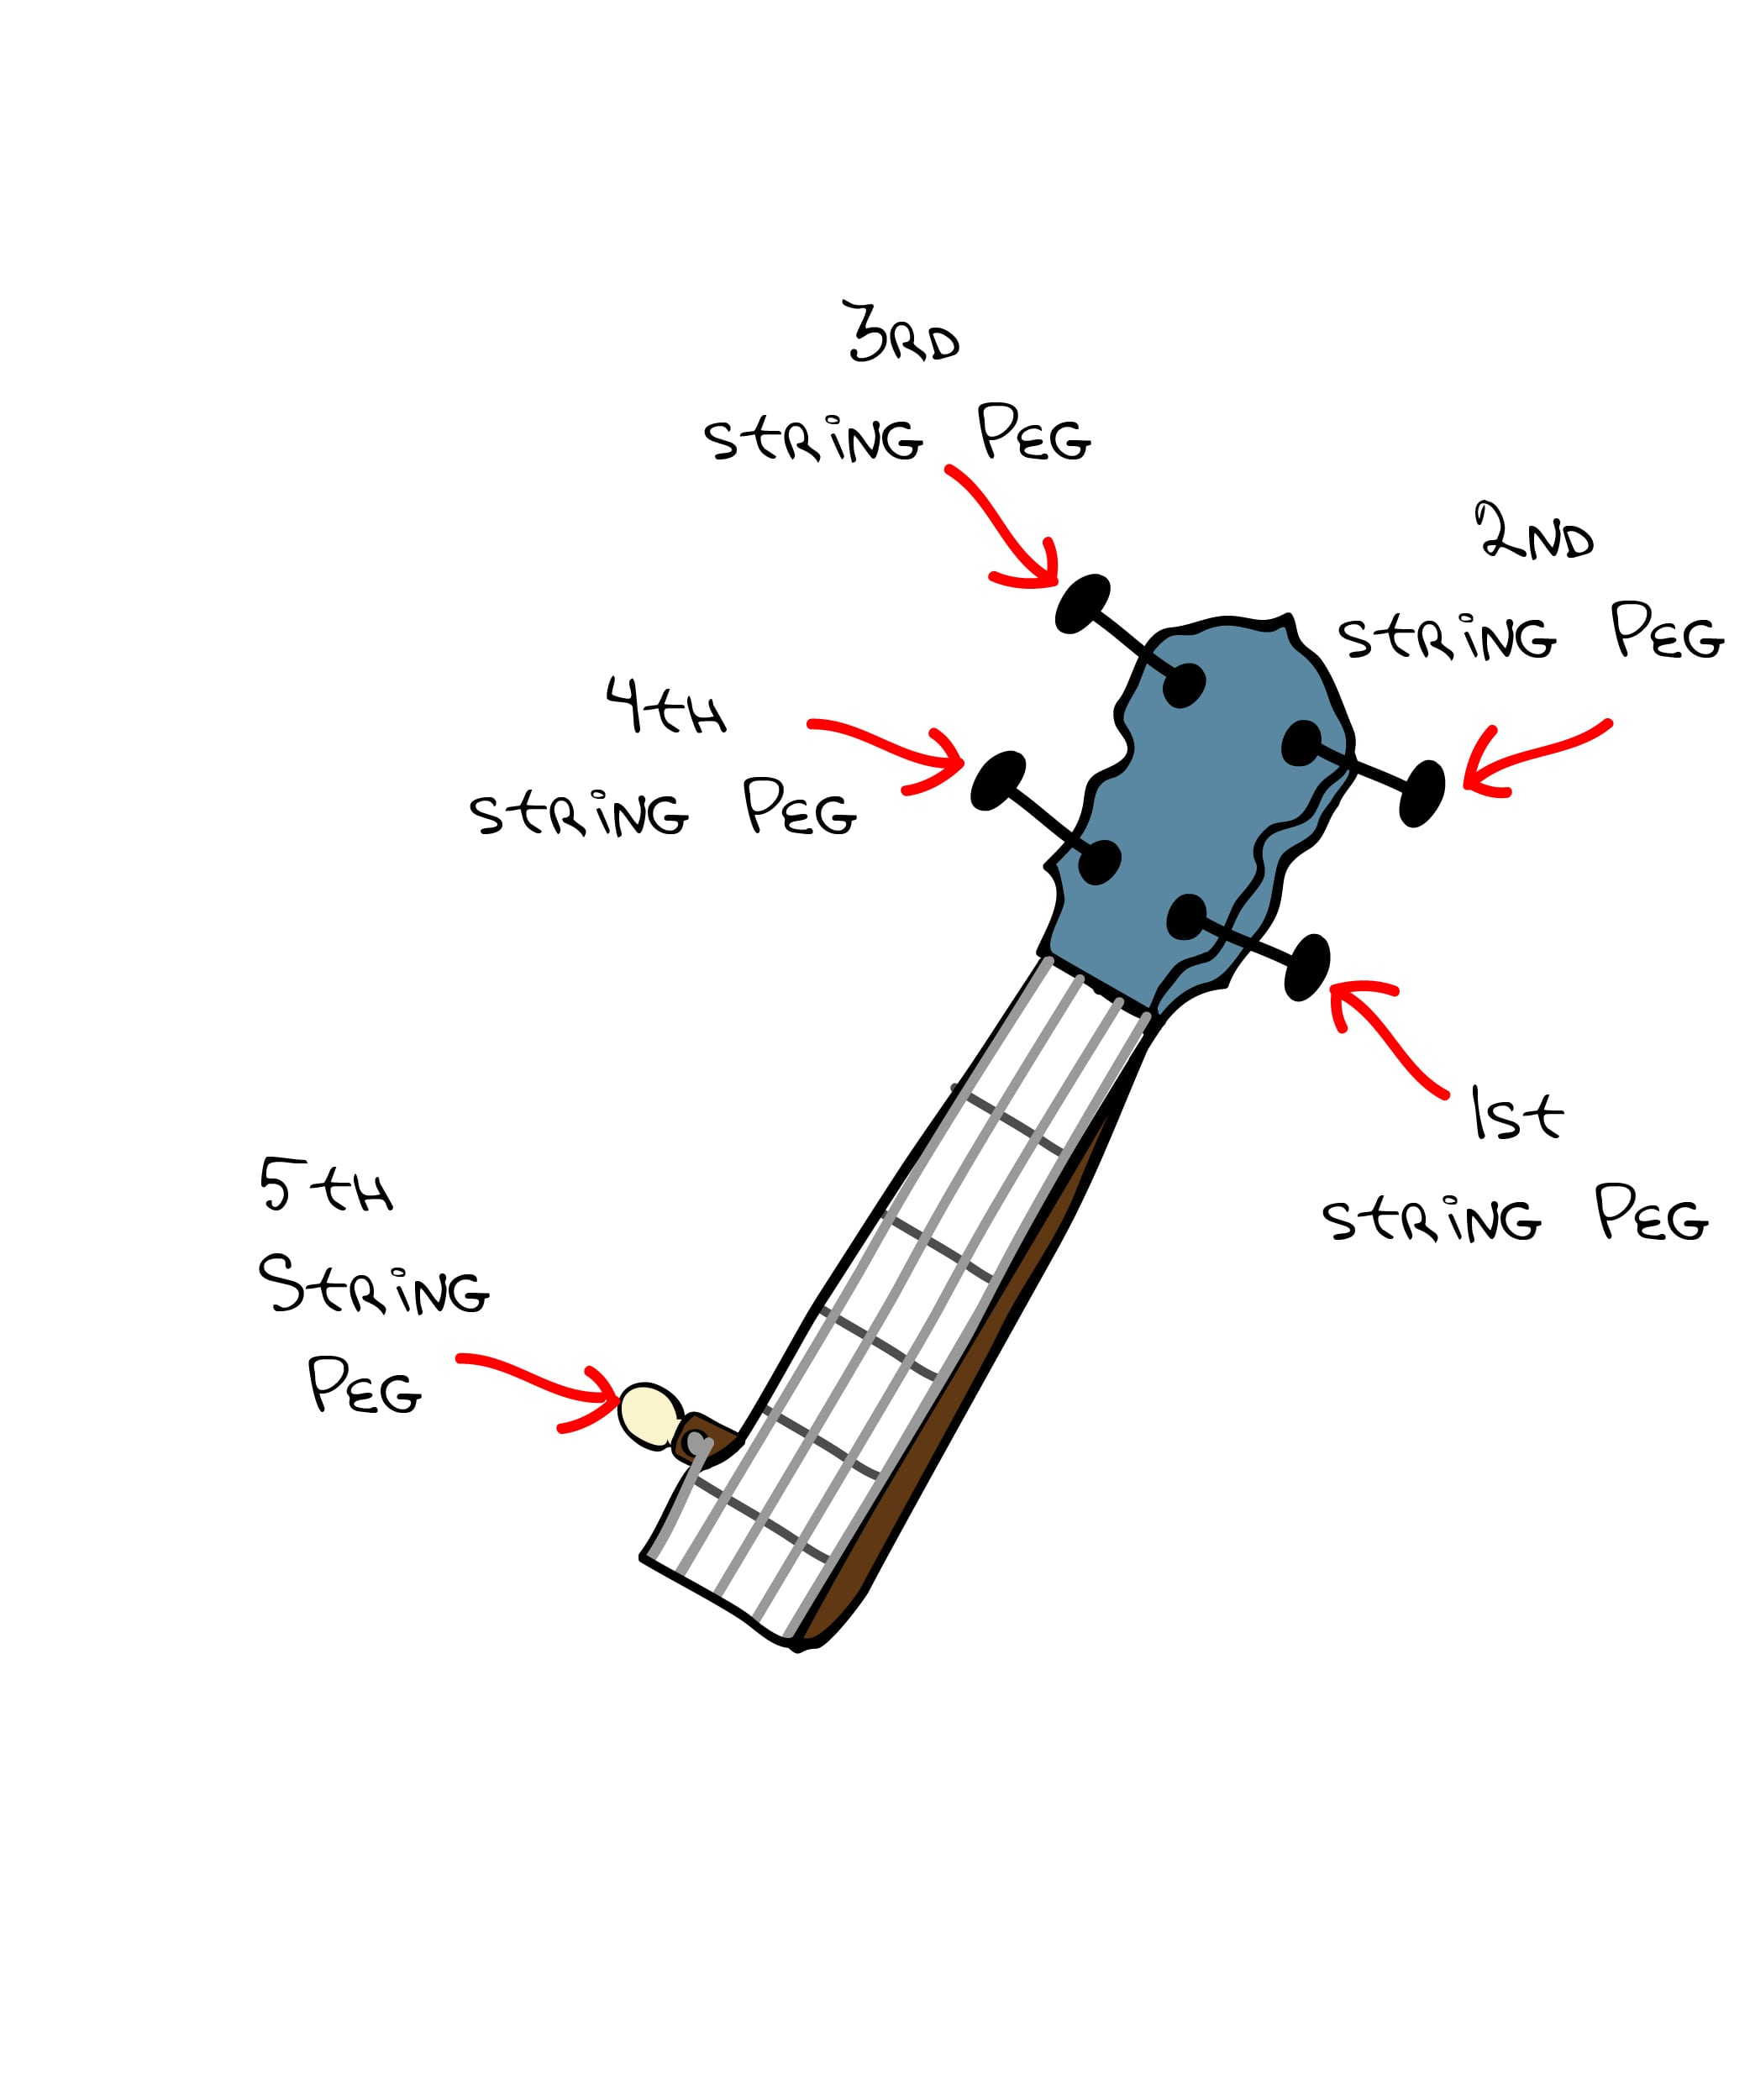 Diagram showing the names and positions of the tuning pegs on a five string banjo